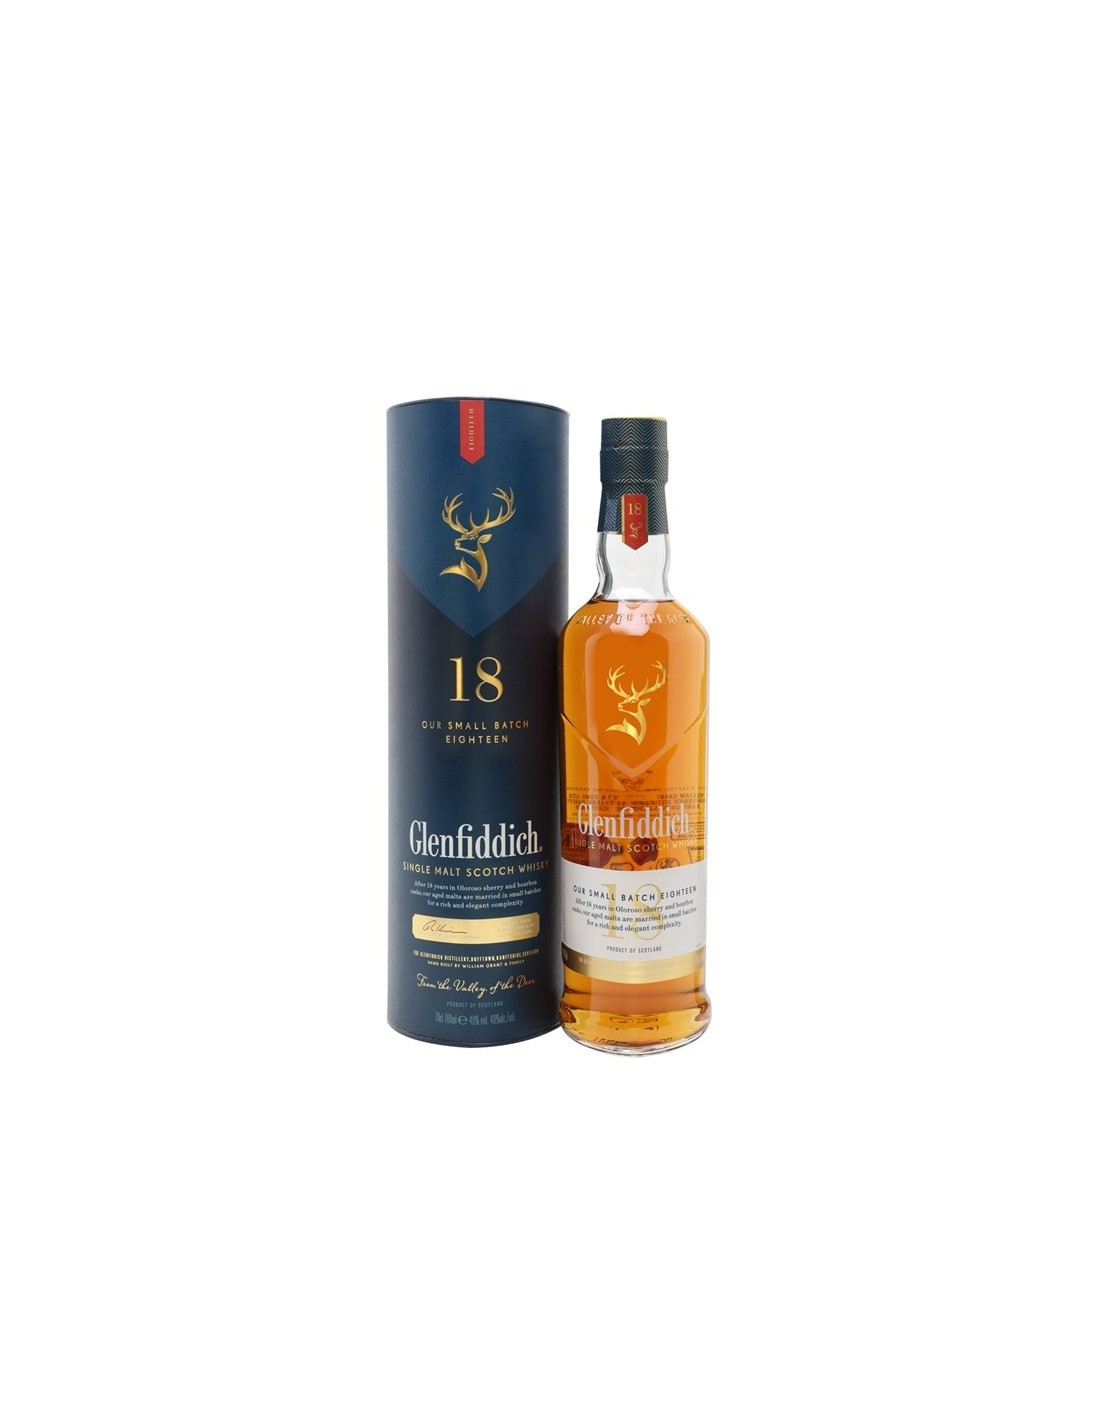 Whisky Glenfiddich Our Small Batch Eighteen 0.7L, 40% alc., Scotia